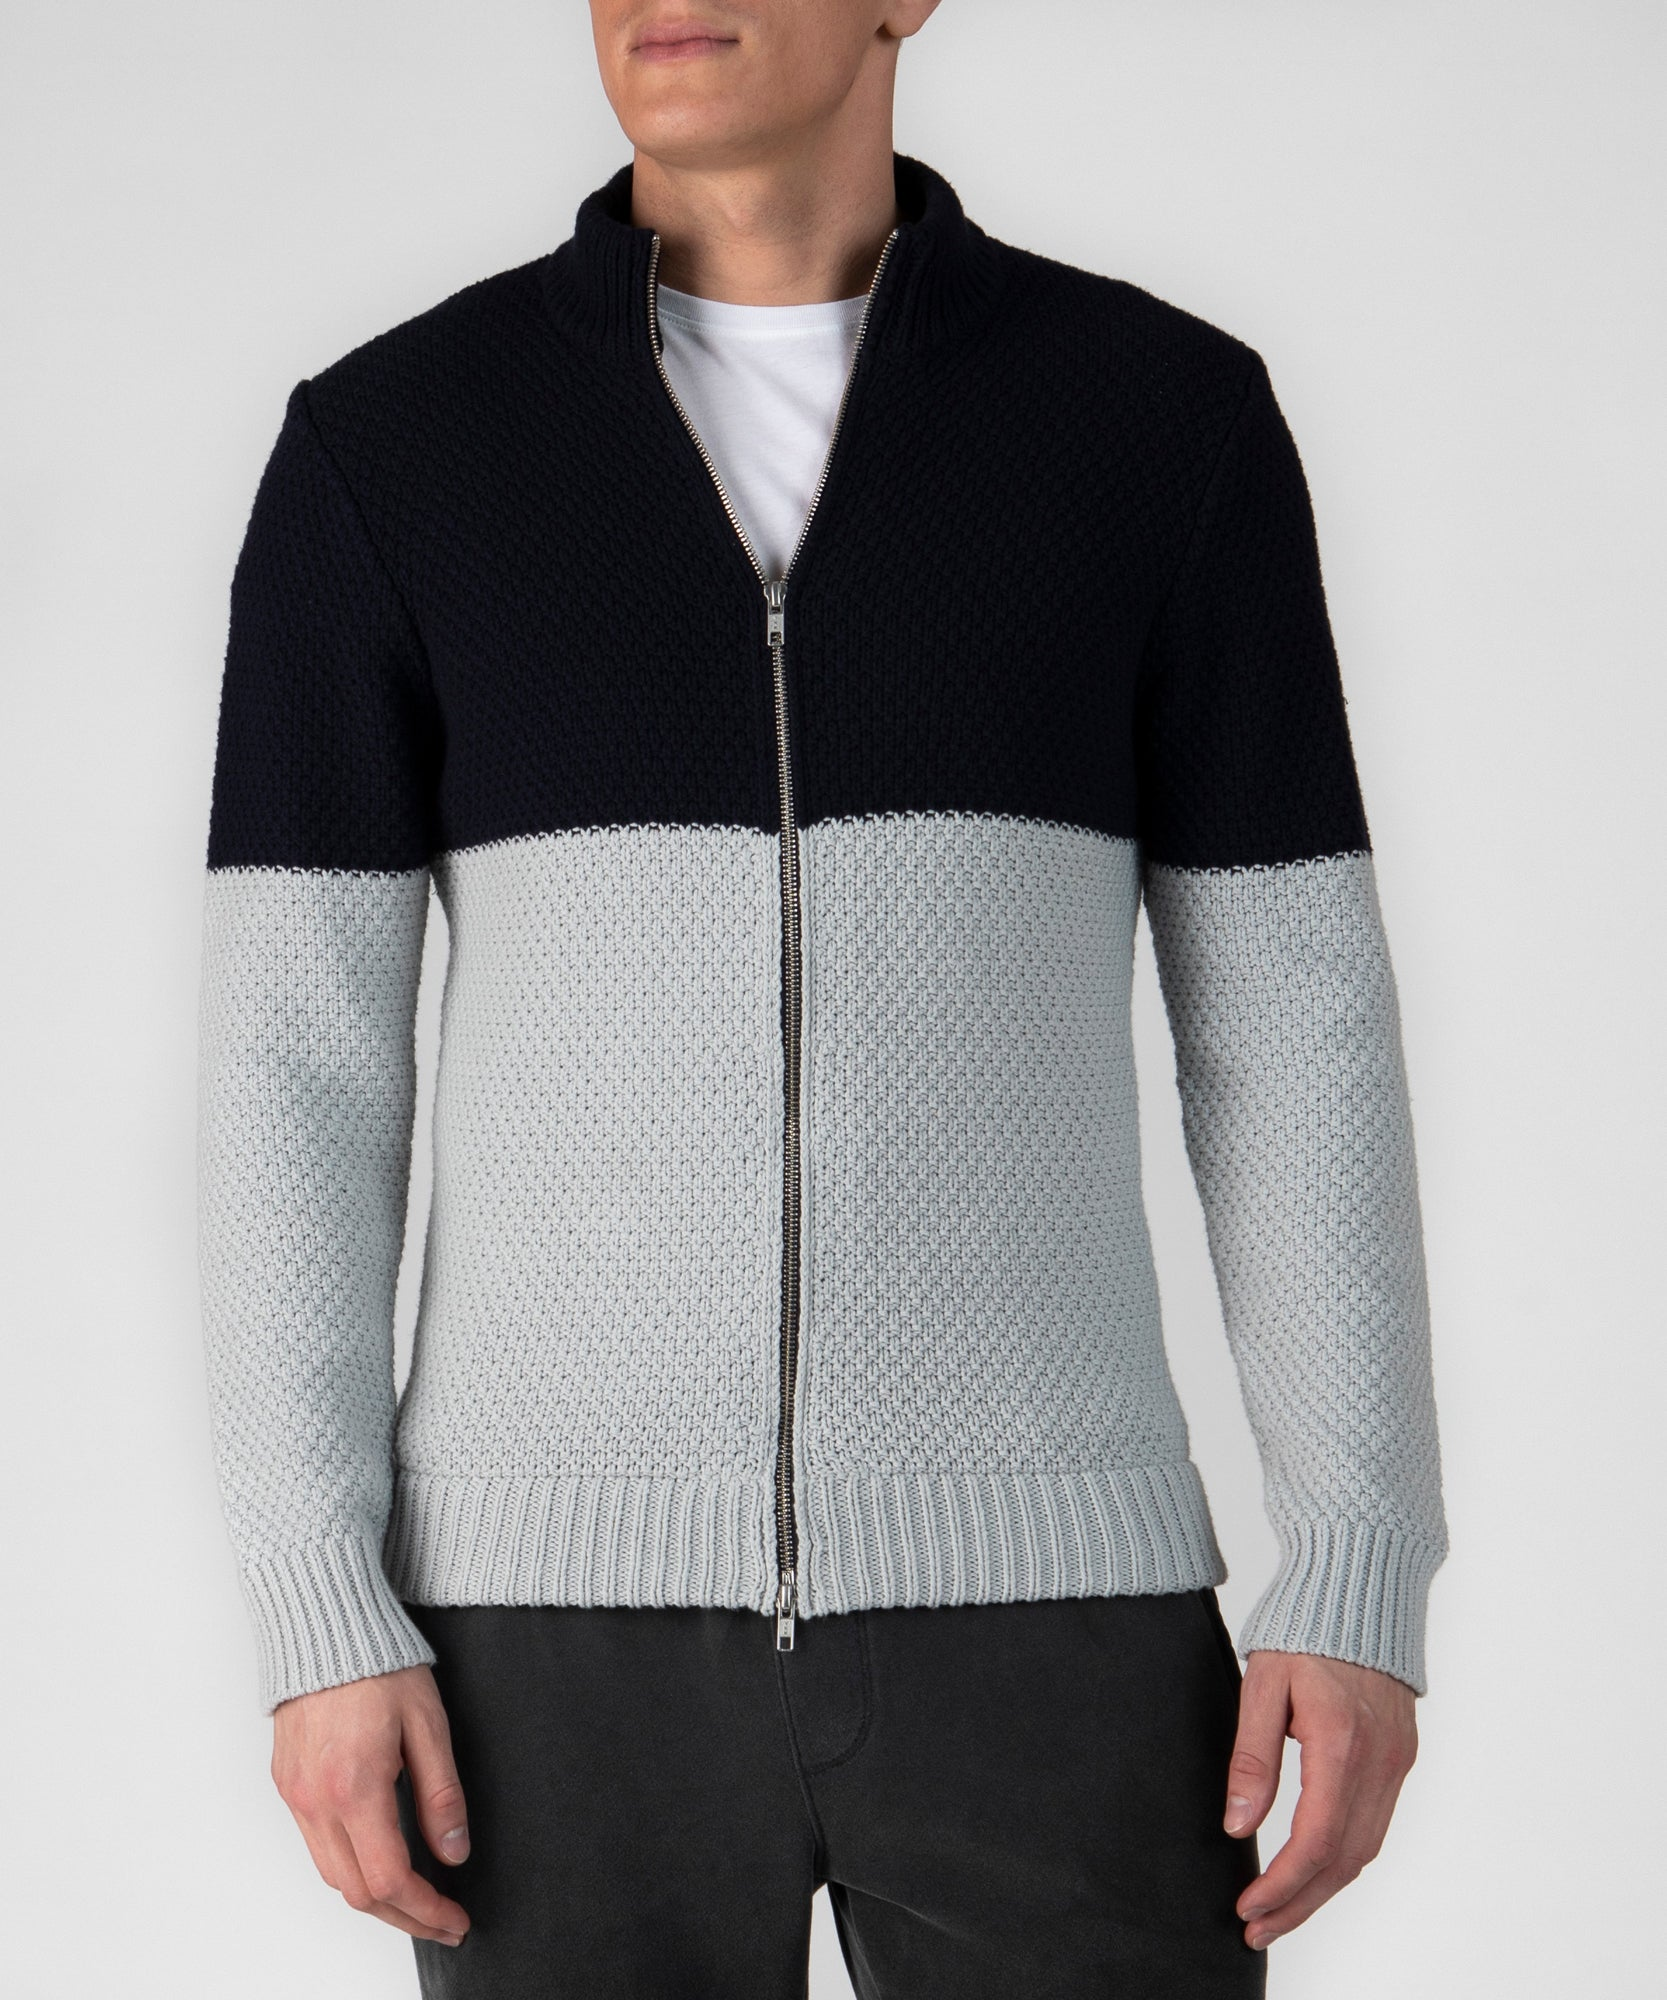 Deep Navy Combo Cotton Blend Zip-Up Cardigan - Men's Luxe Sweater by ATM Anthony Thomas Melillo